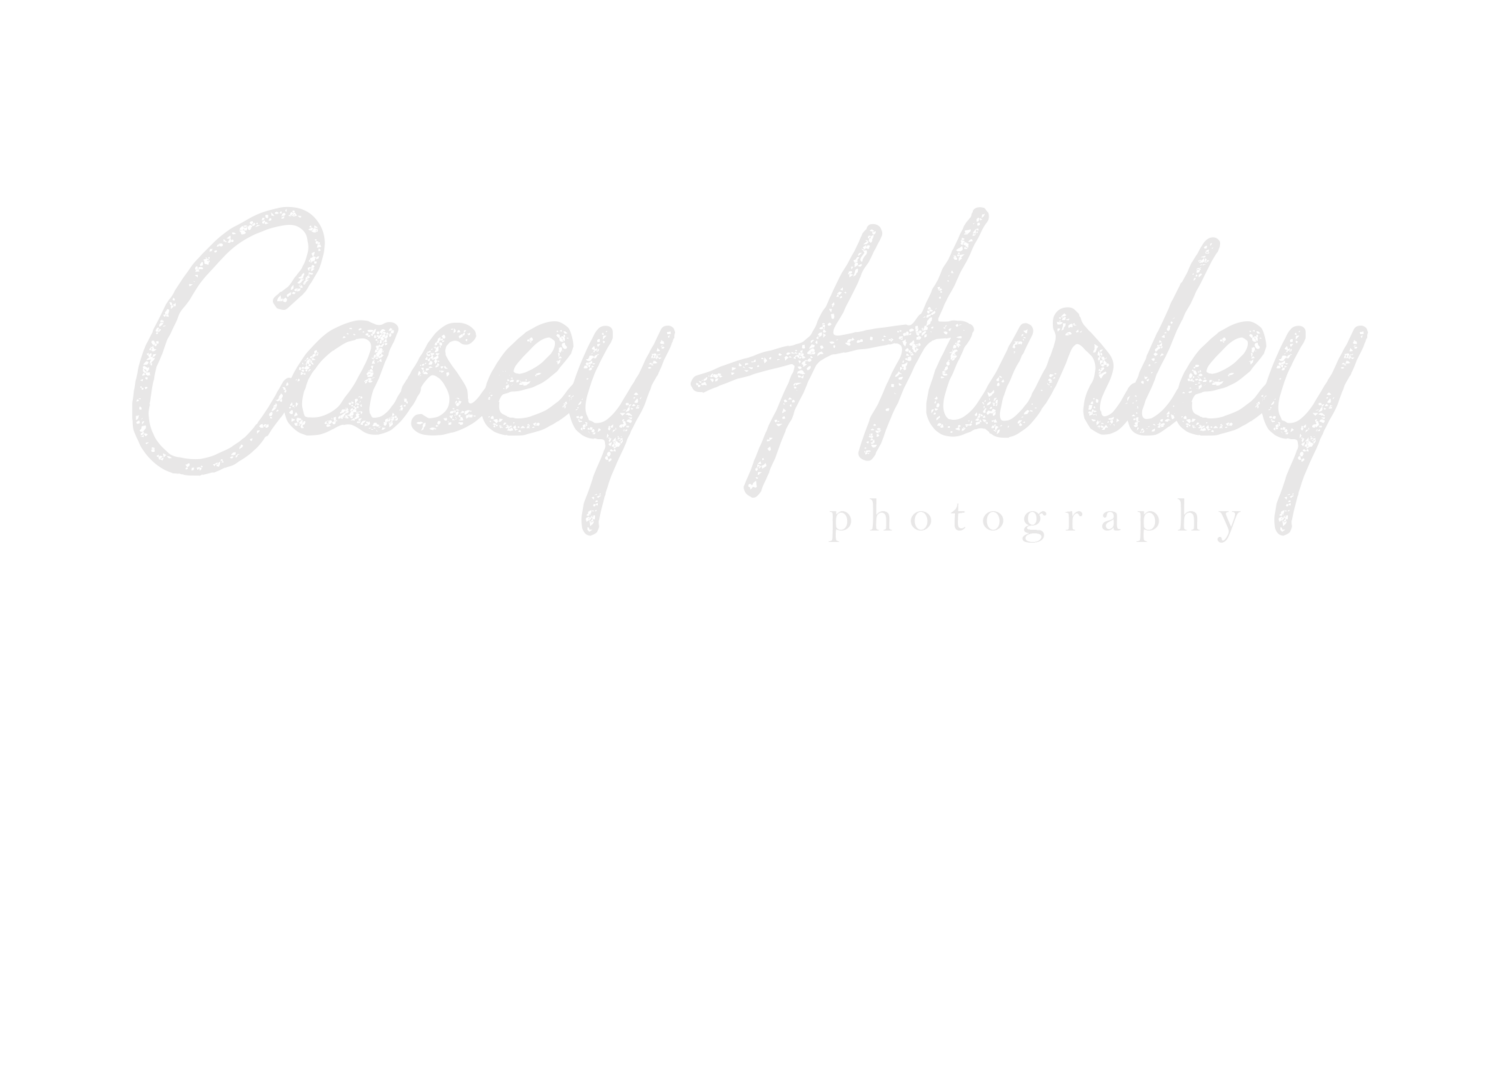 casey hurley photo